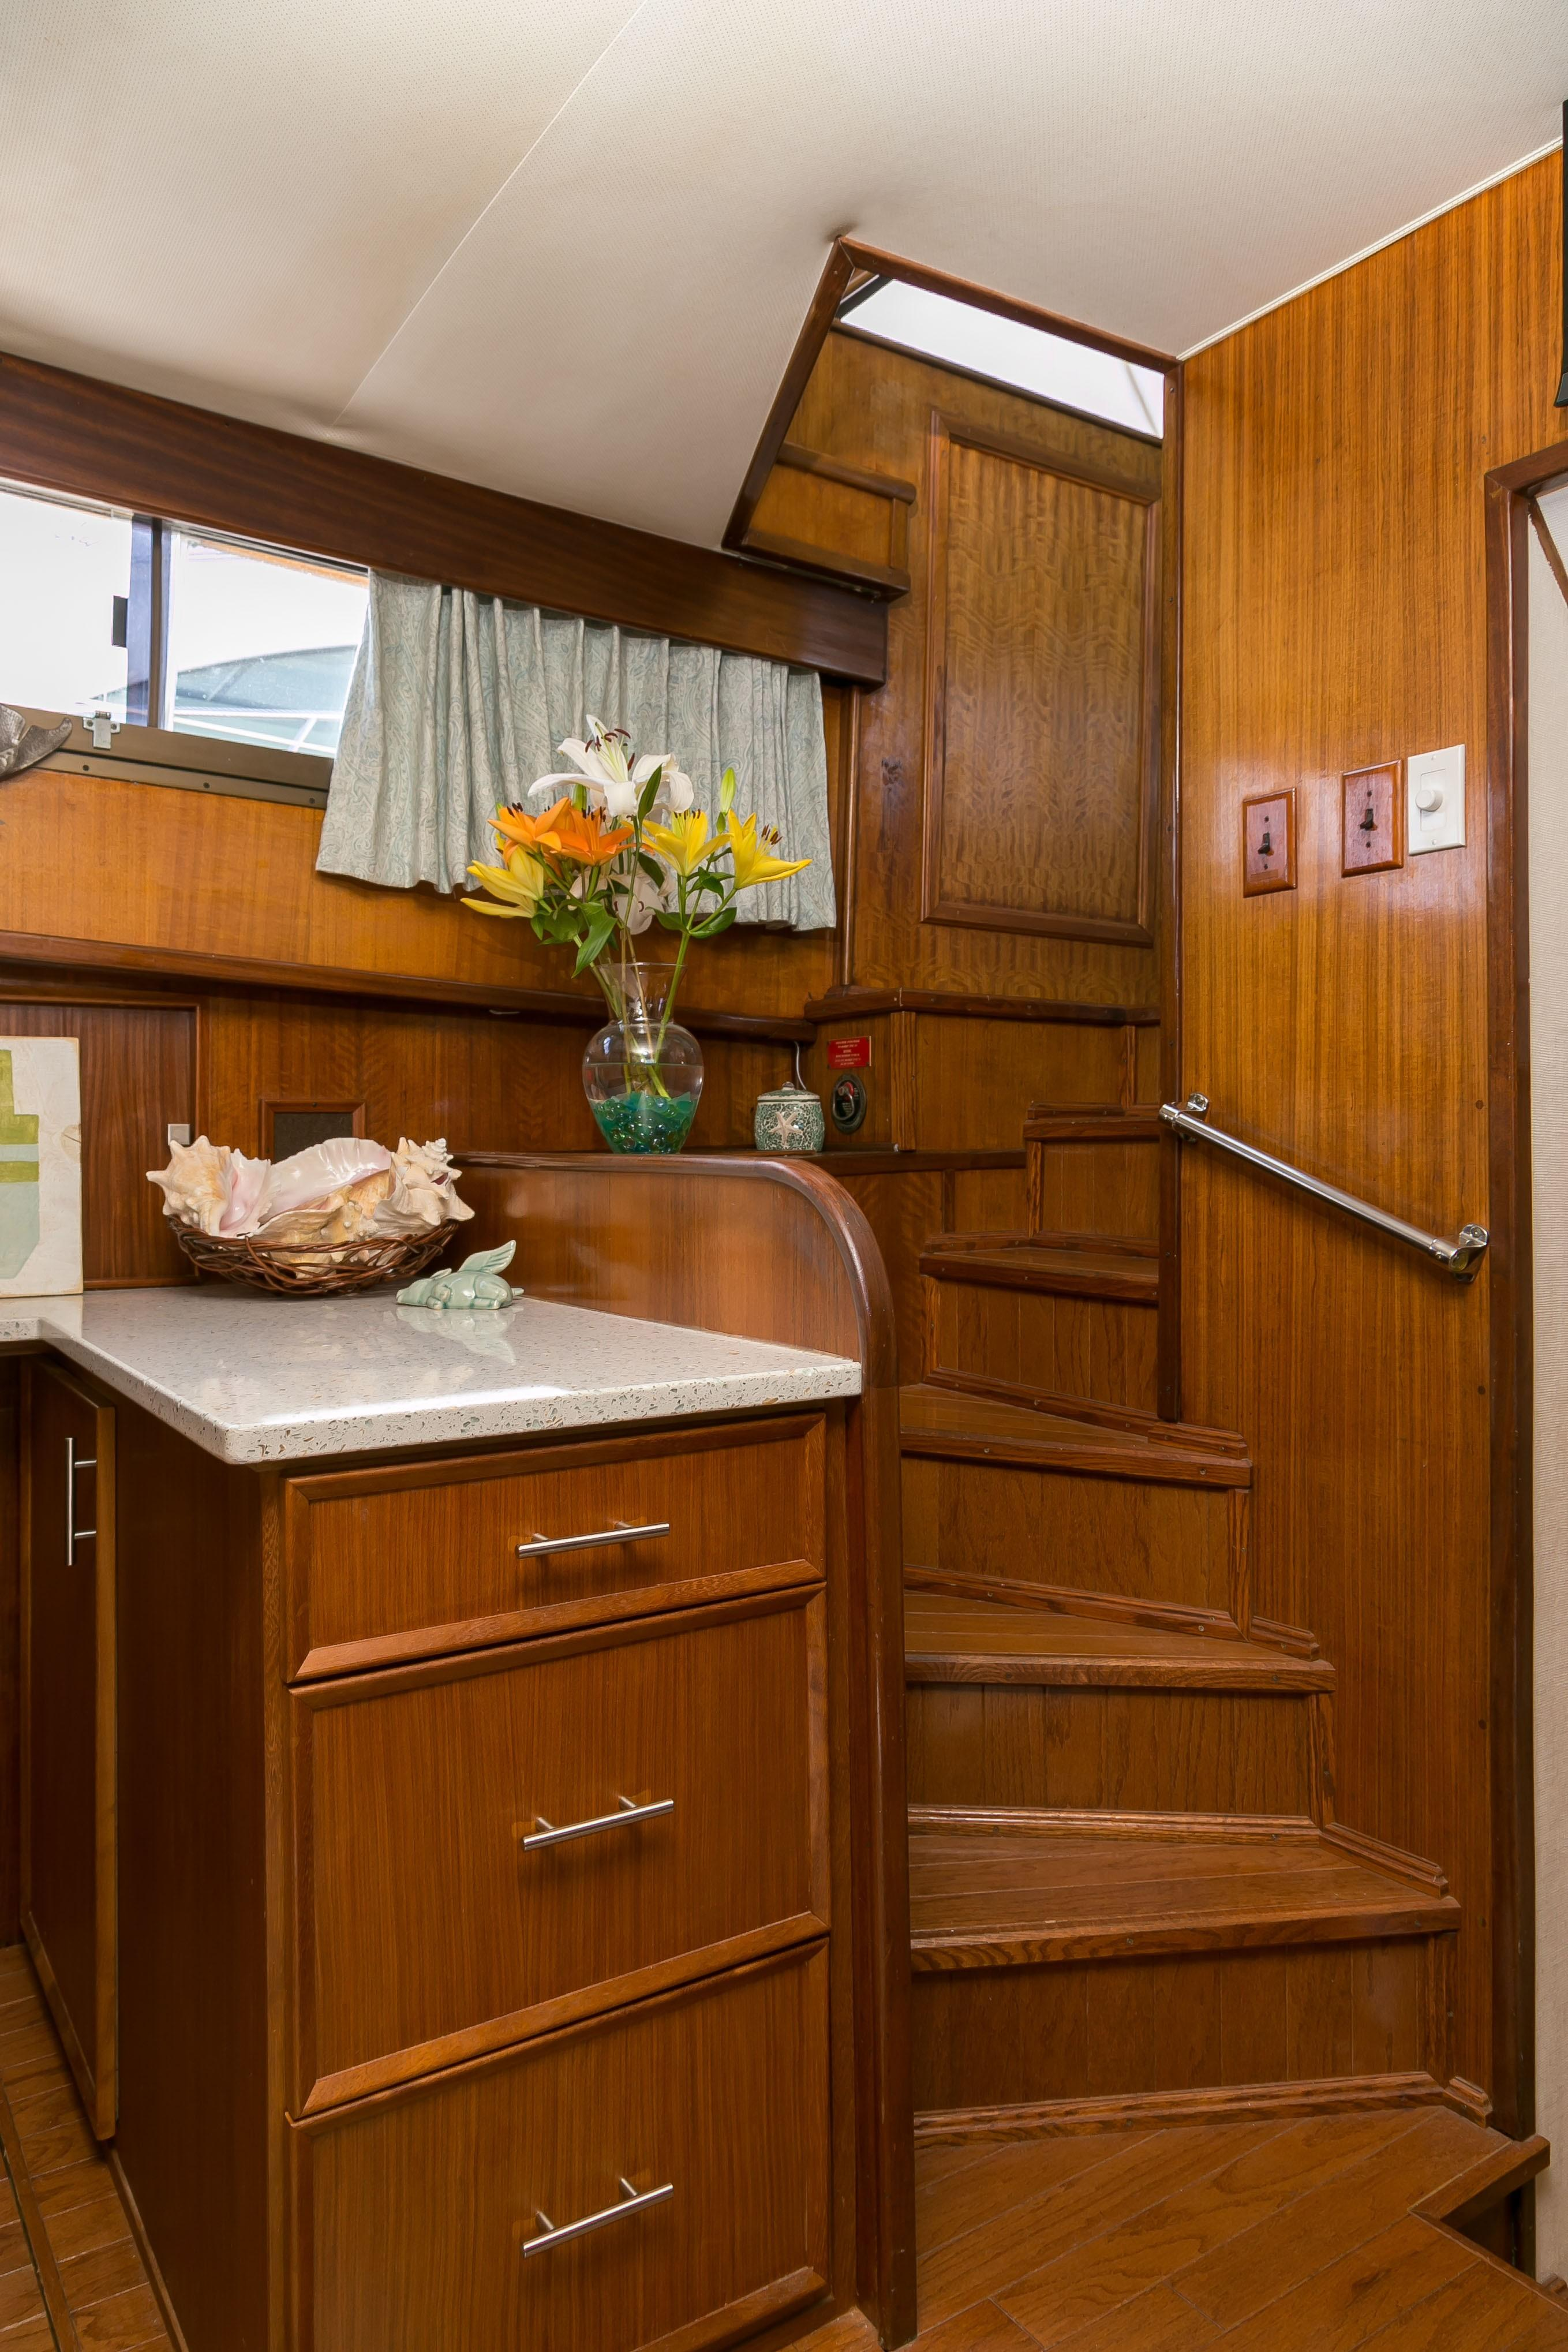 Hatteras 53 Motor Yacht - Companionway from pilothouse to galley